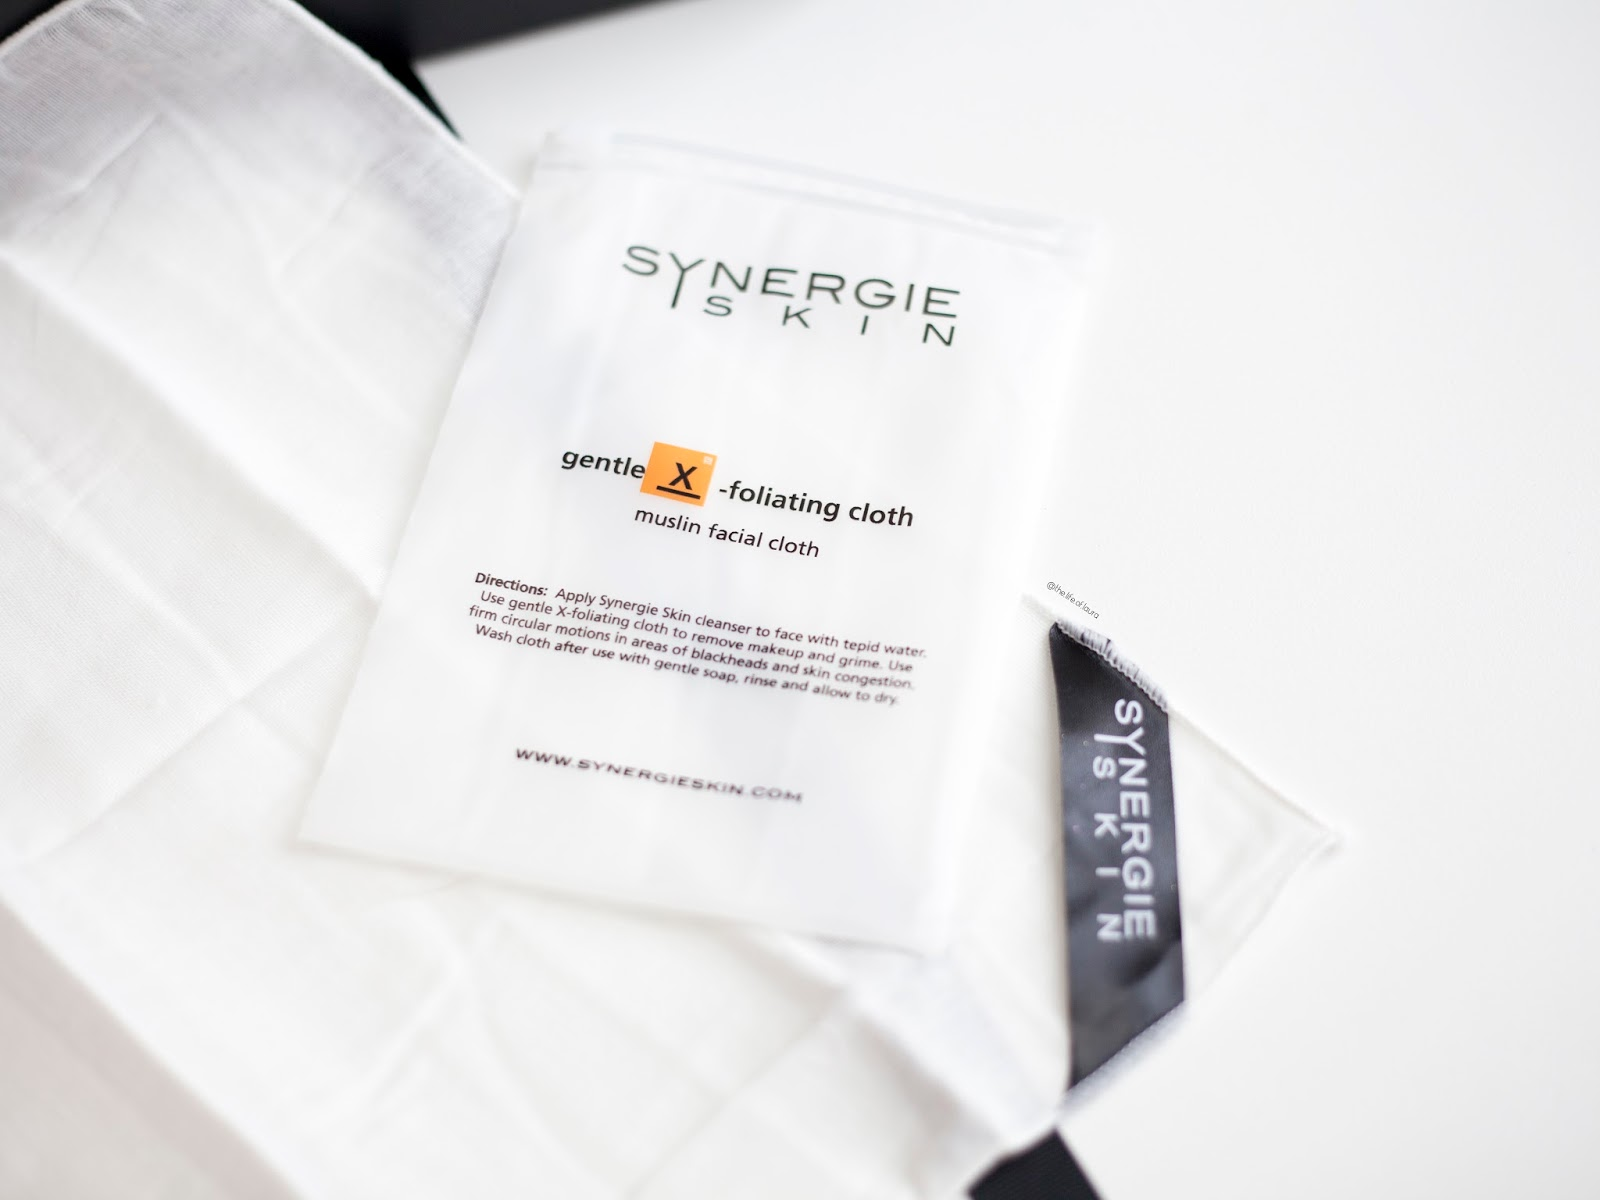 Synergie Skin DermaRadiance Essentials XFoliating Cloth